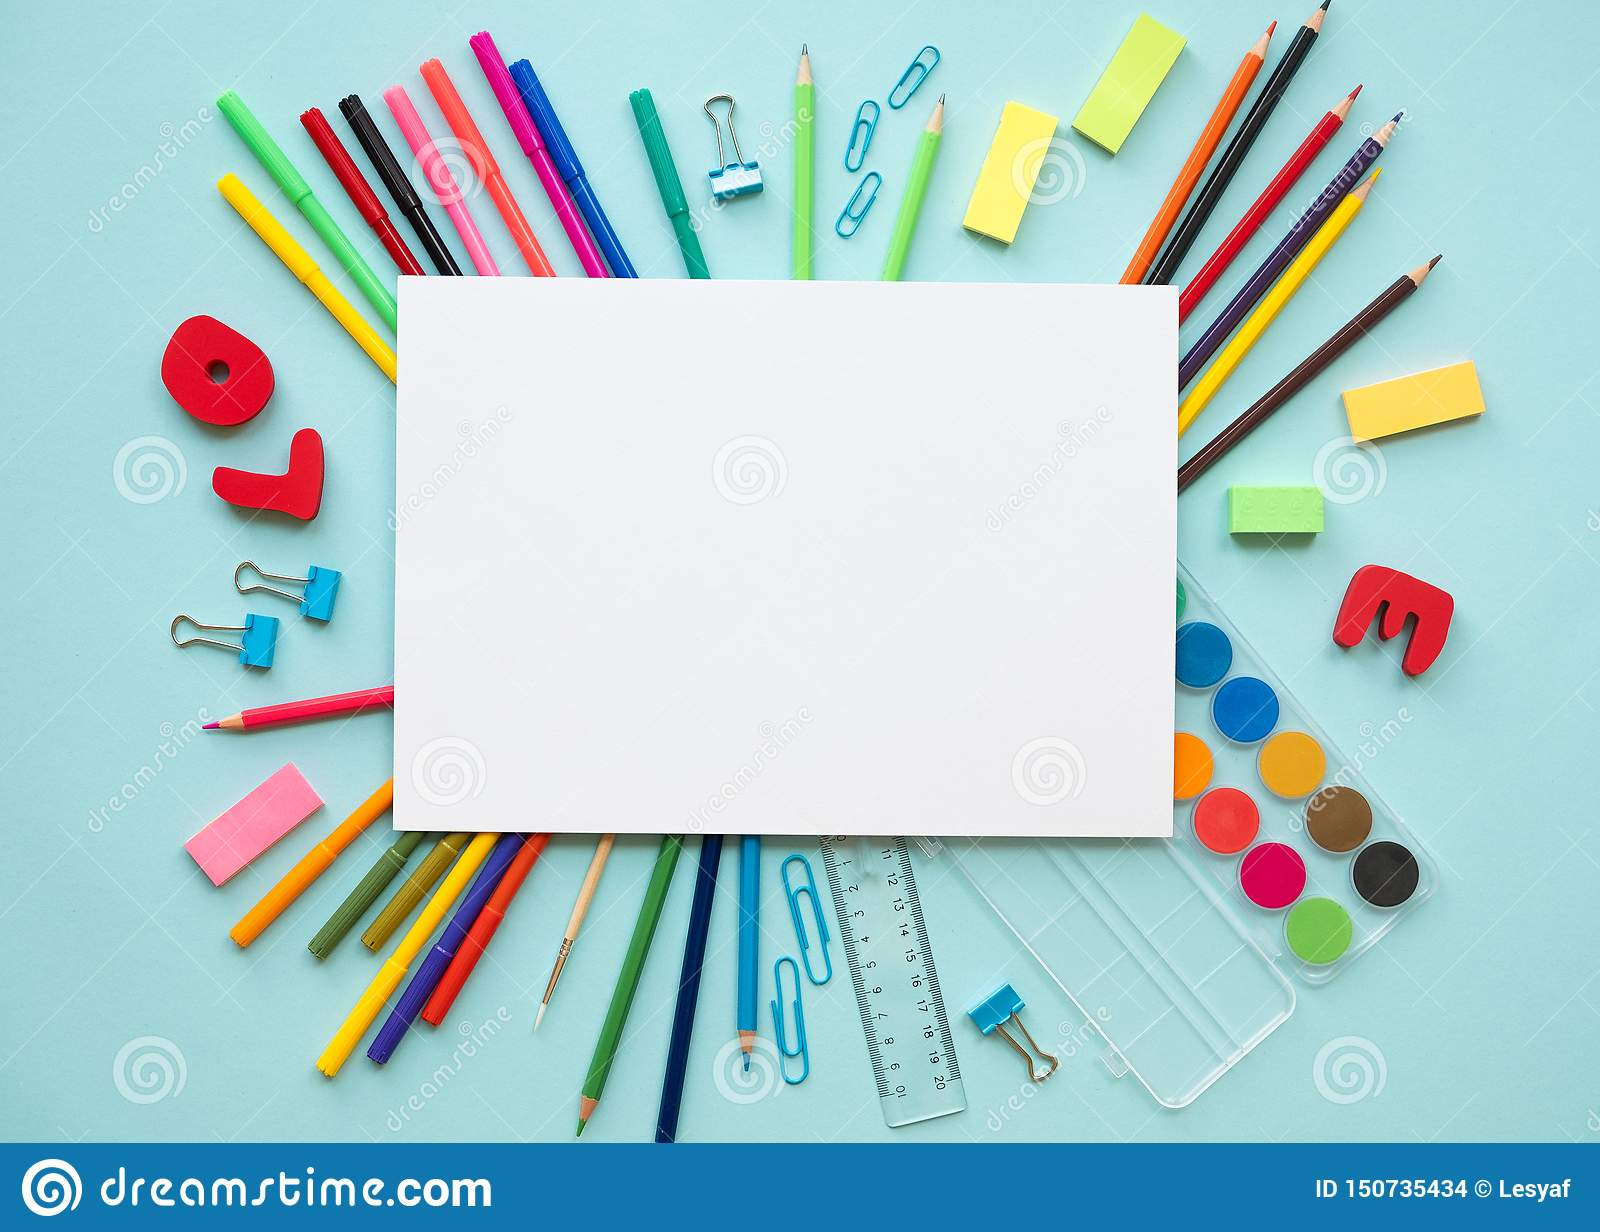 School elements on blue background with space for text symbolizing back to school.